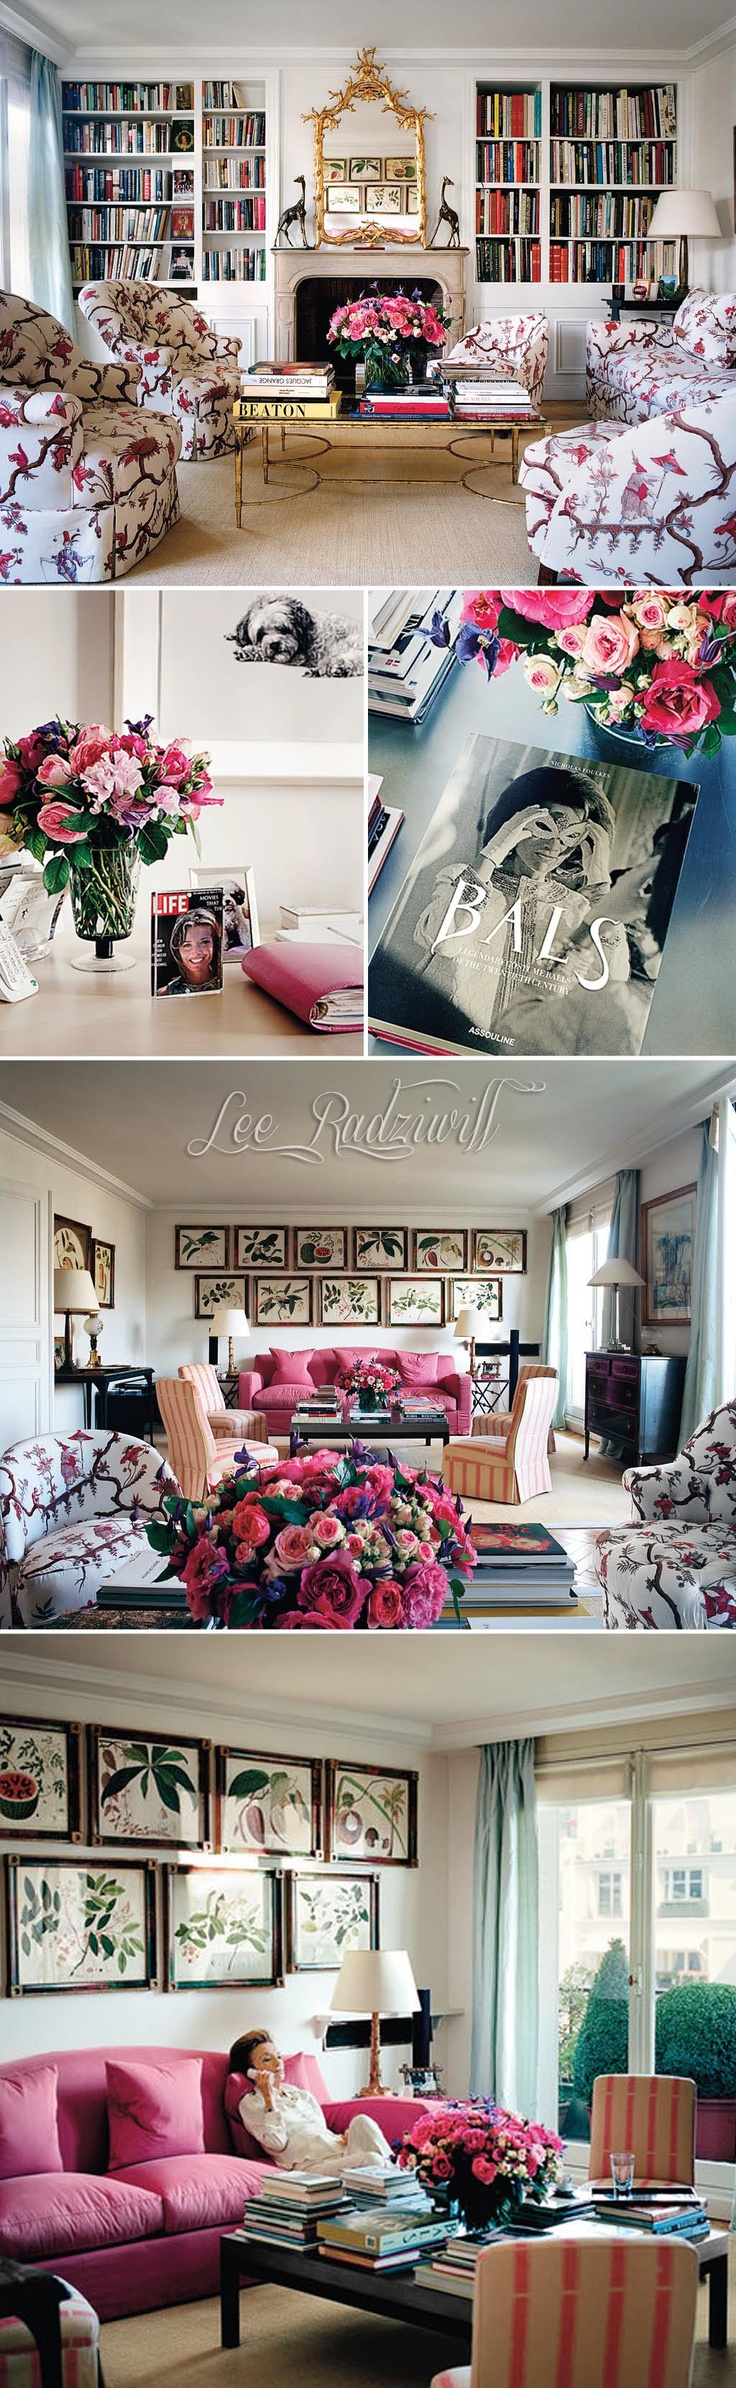 Jackie lee s coral springs - I M Really Into Floral Couches Lately Lee Radziwill S Apartment